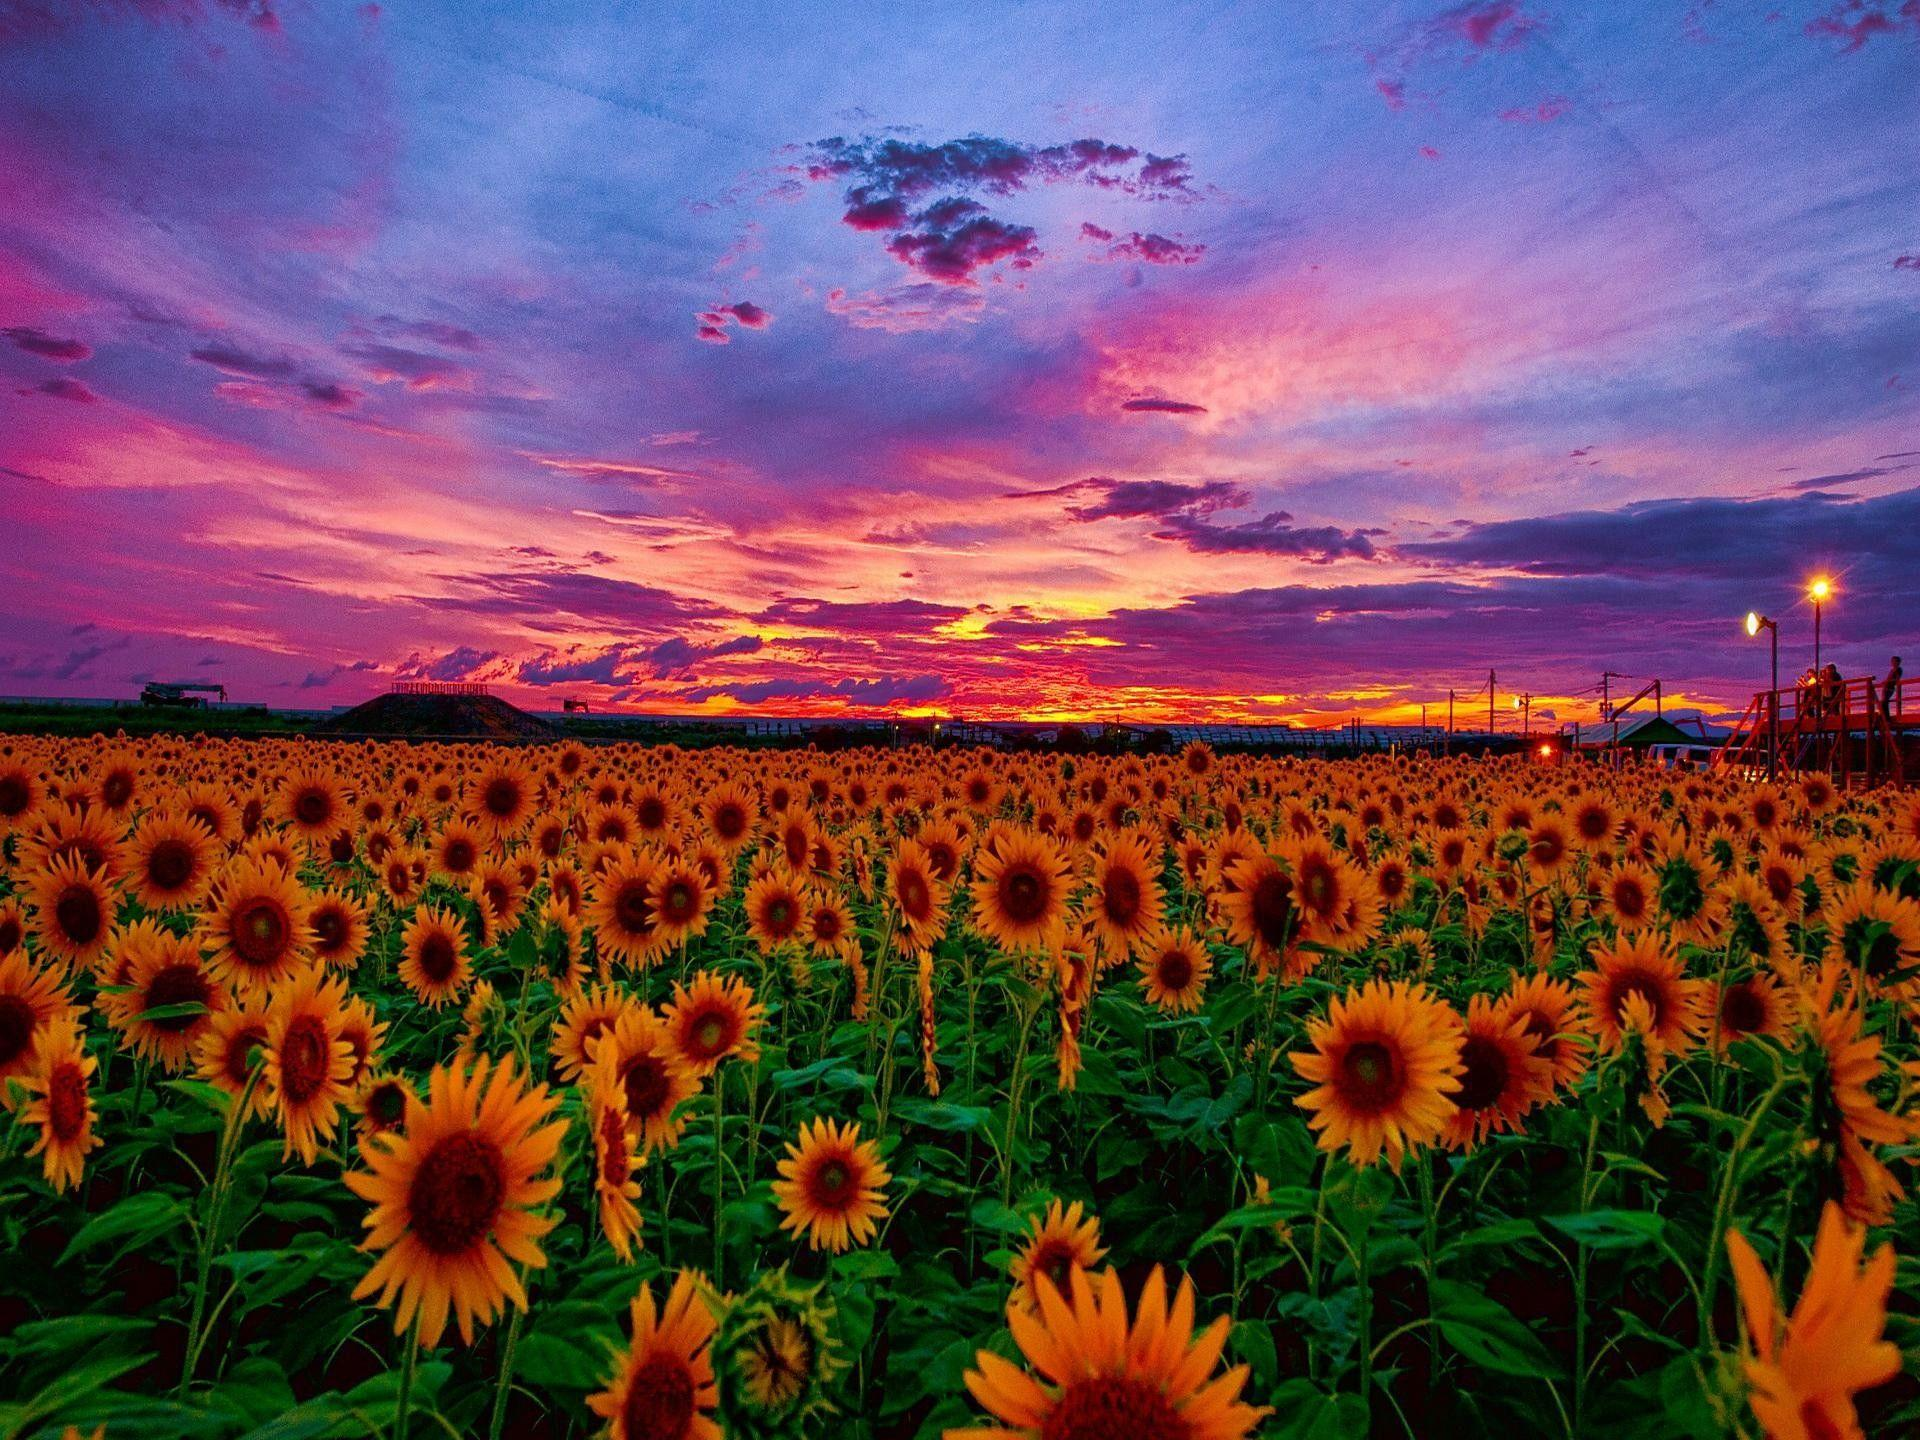 Sunflowers At Sunset Wallpapers Wallpaper Cave